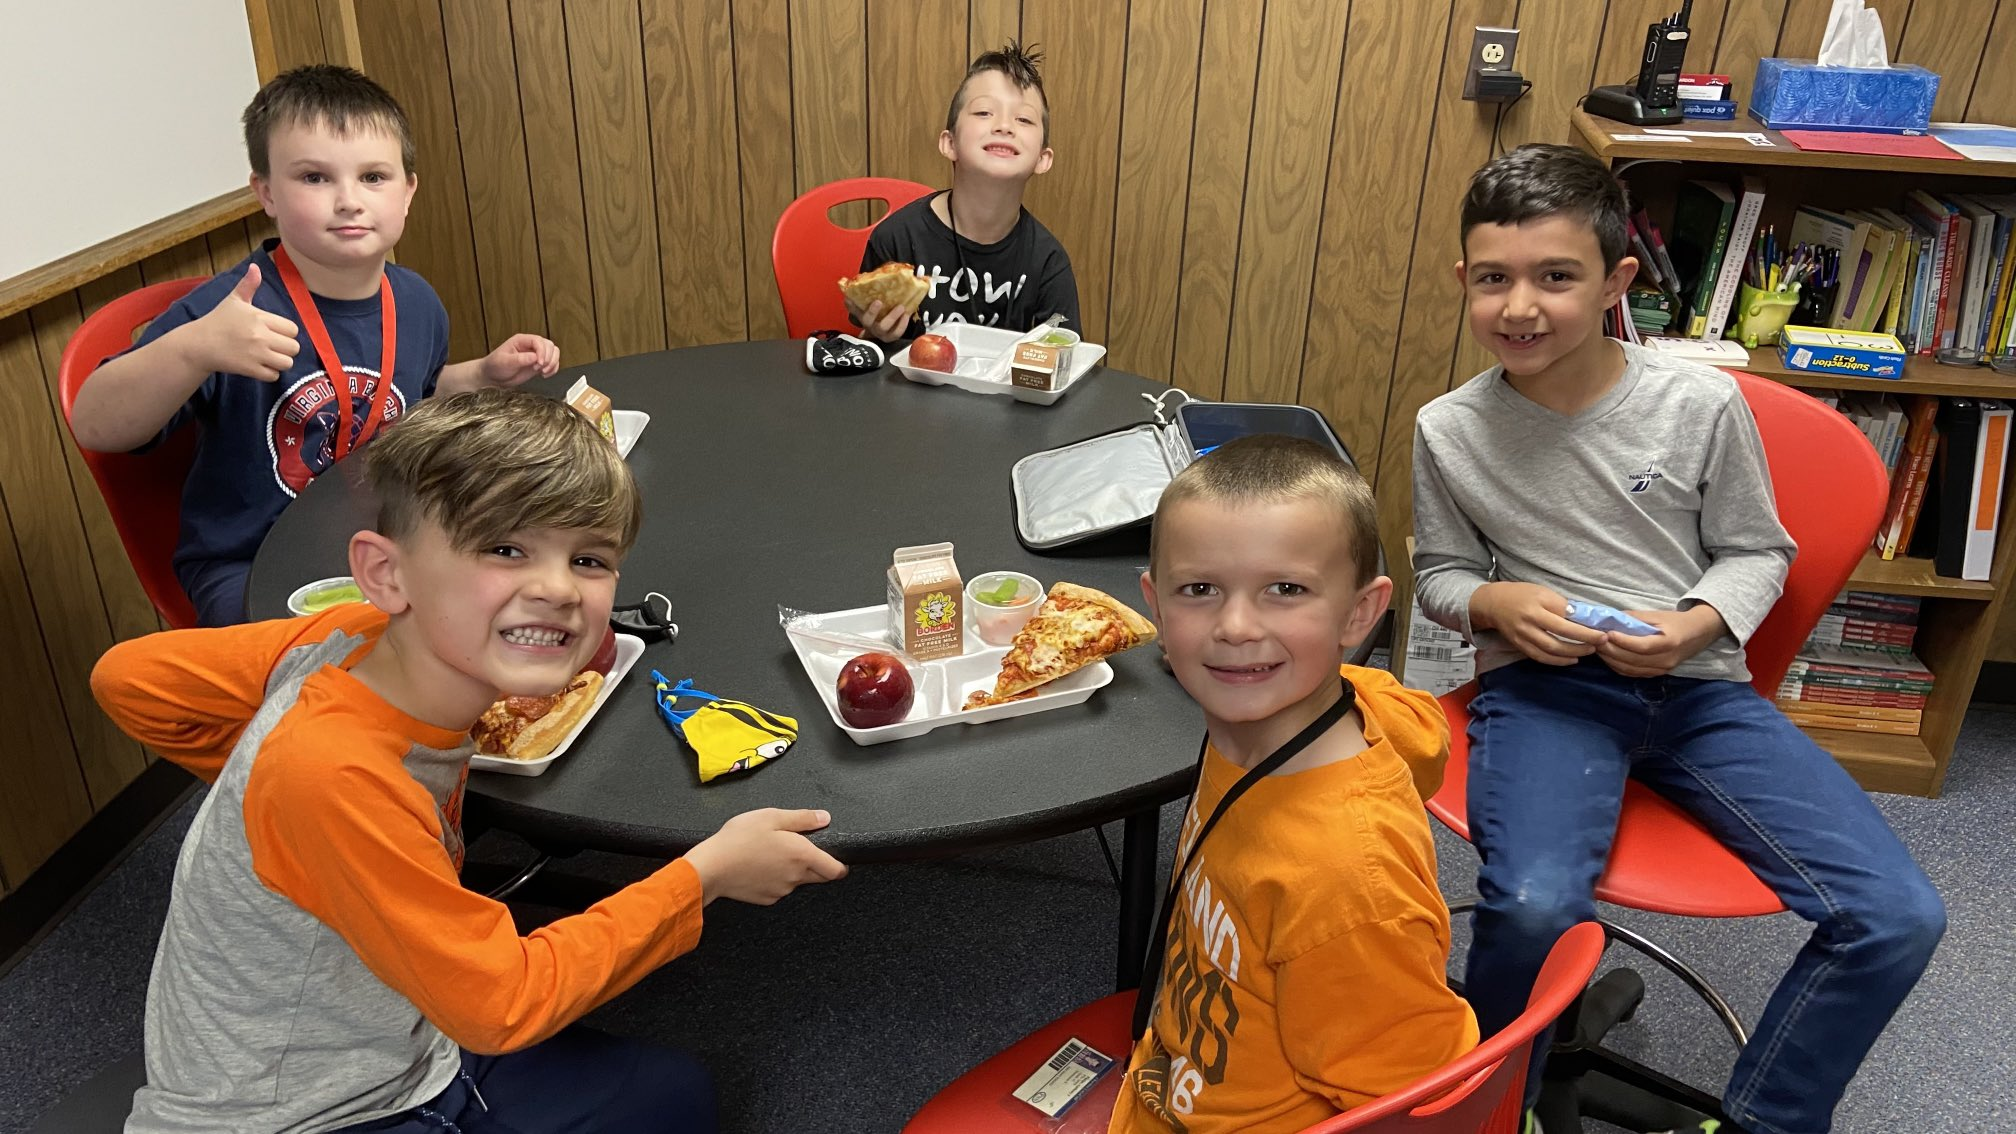 Group photo of 5 Munson Elementary students seated at a table - smiling for the camera - and having school lunches.